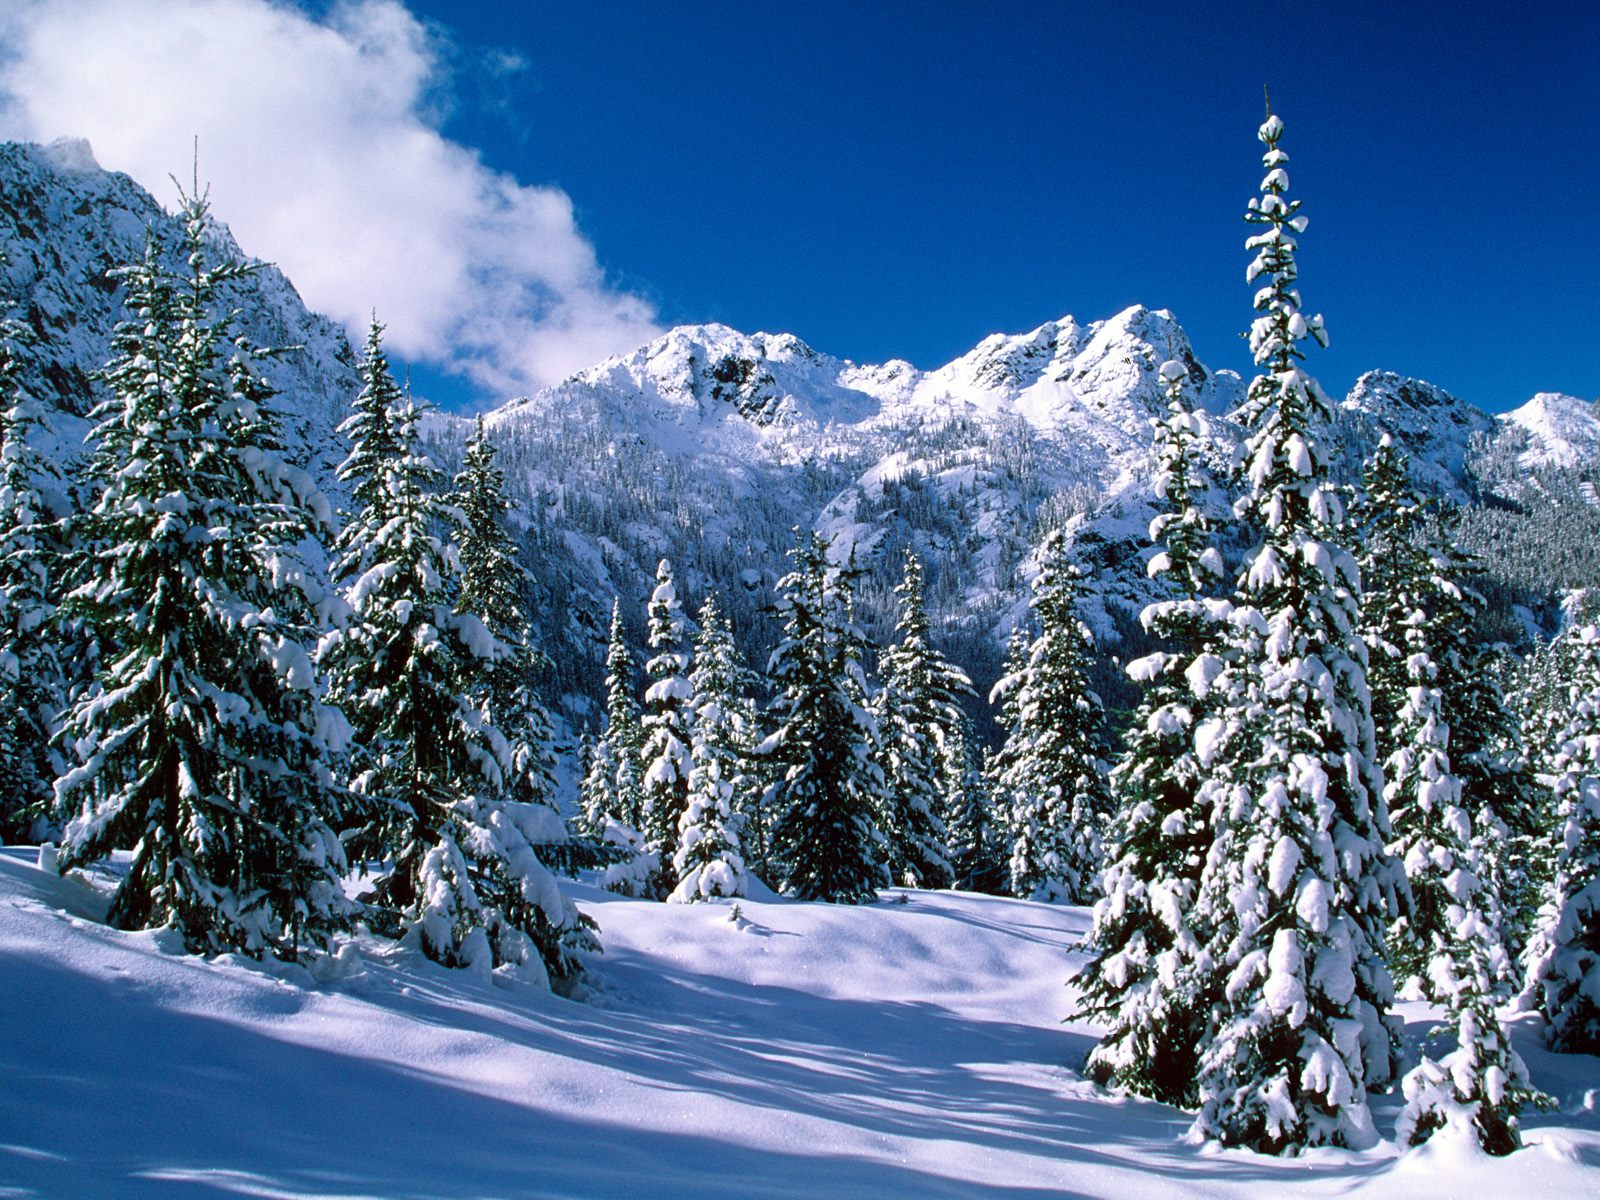 free desktop winter wallpaper downloads   wwwwallpapers in hdcom 1600x1200